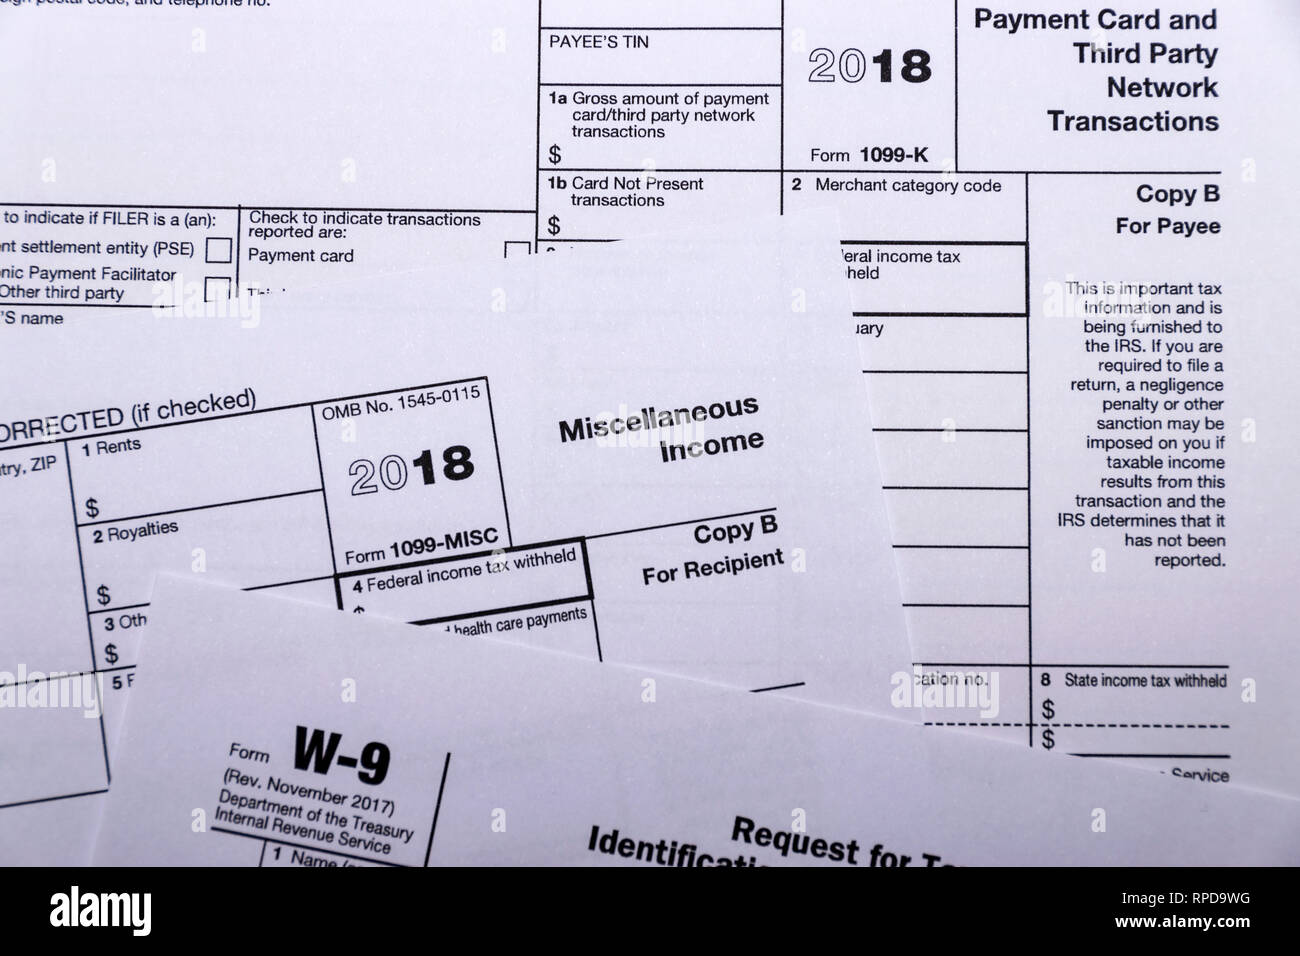 Composed shot of IRS tax forms 1099-MISC, 1099-K and W-9